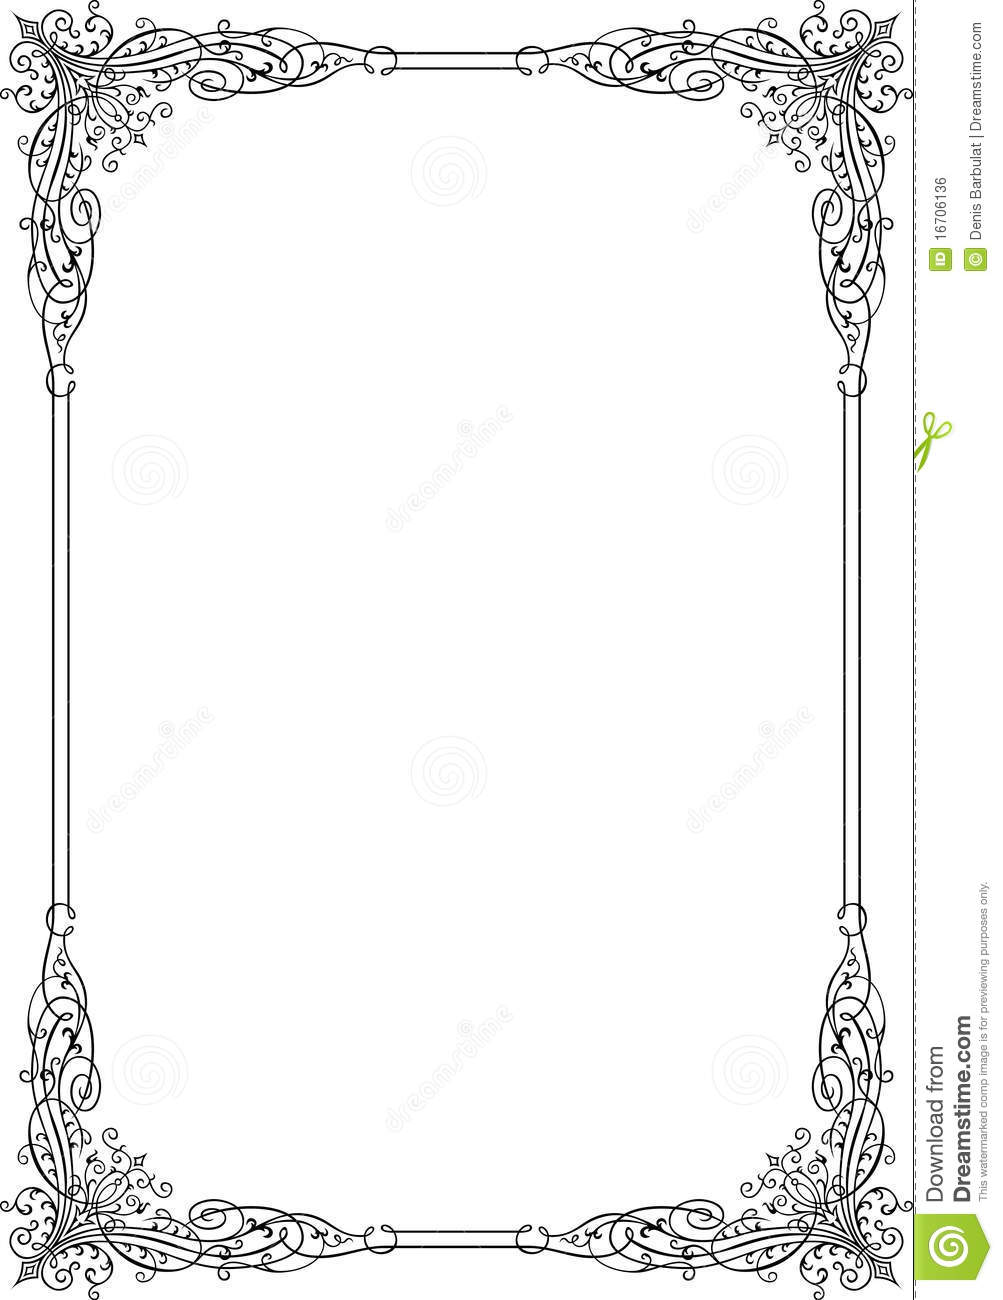 Elegant frame stock vector. Illustration of classical - 16706136